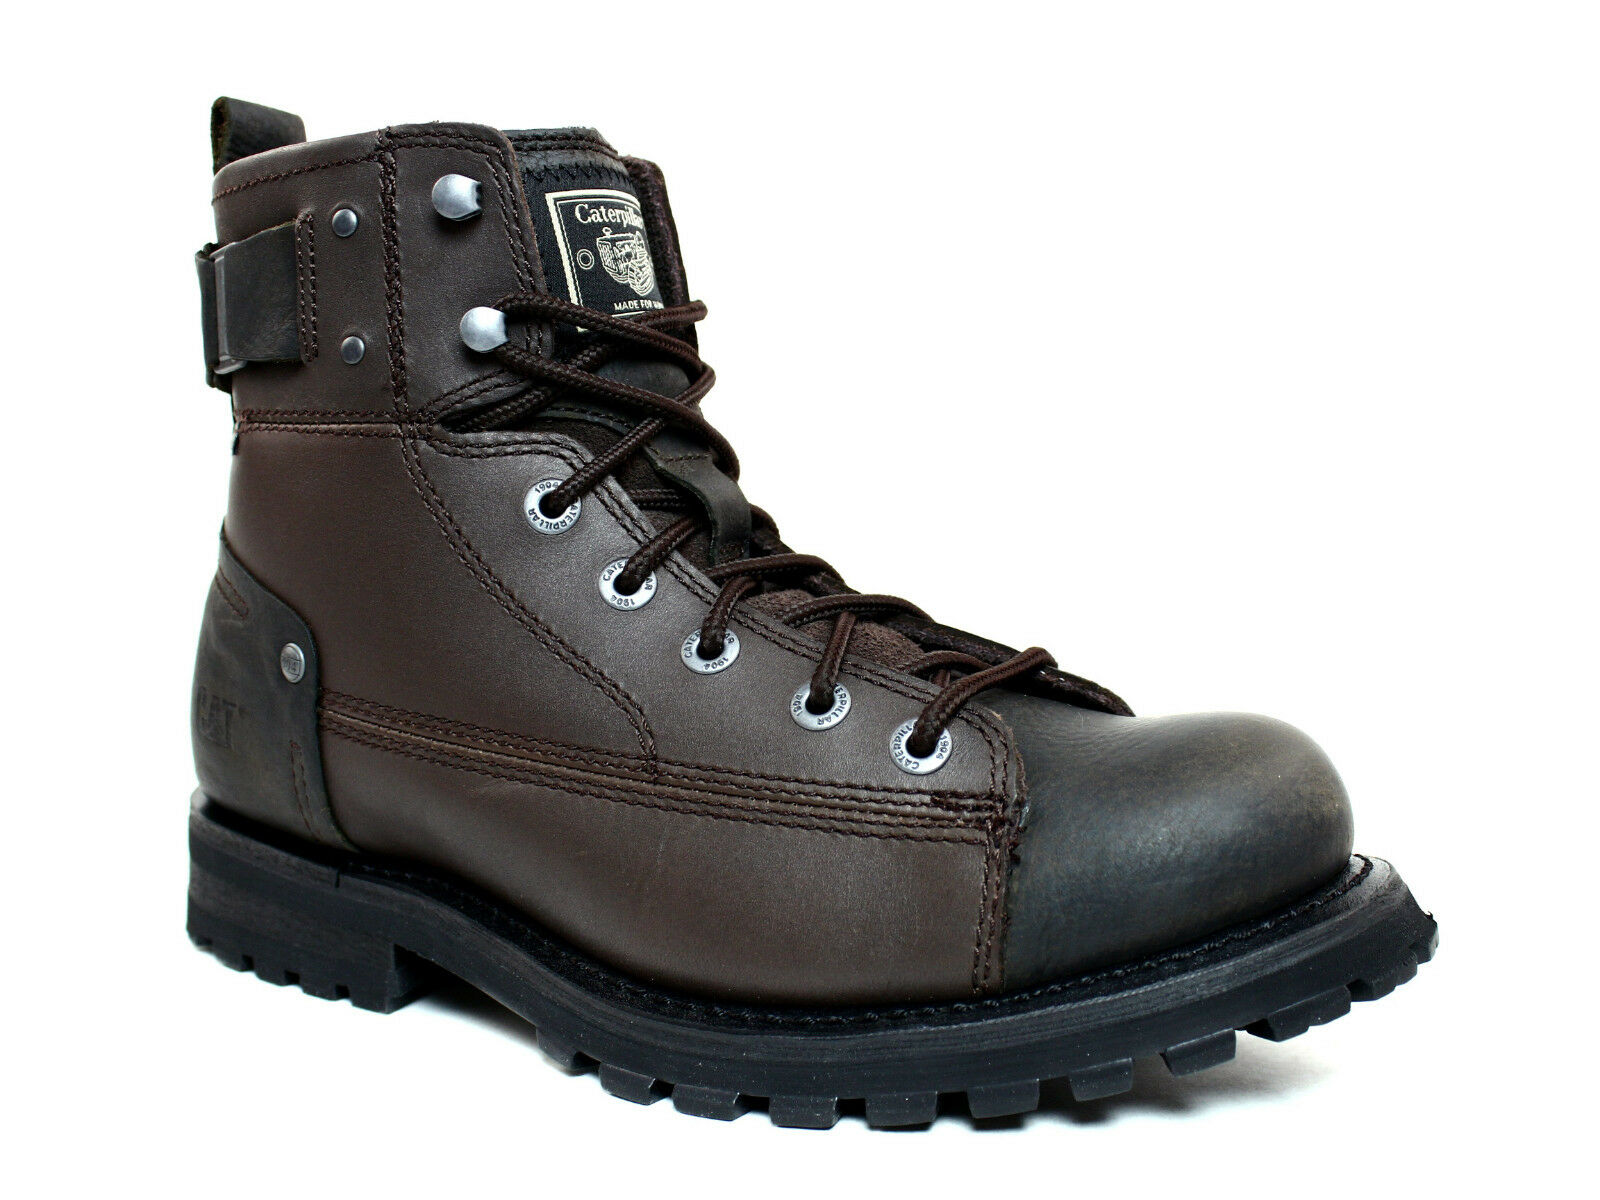 Caterpillar BRENT  Mens  Motorcycle Casual and  Work  Brown  Leather Boots